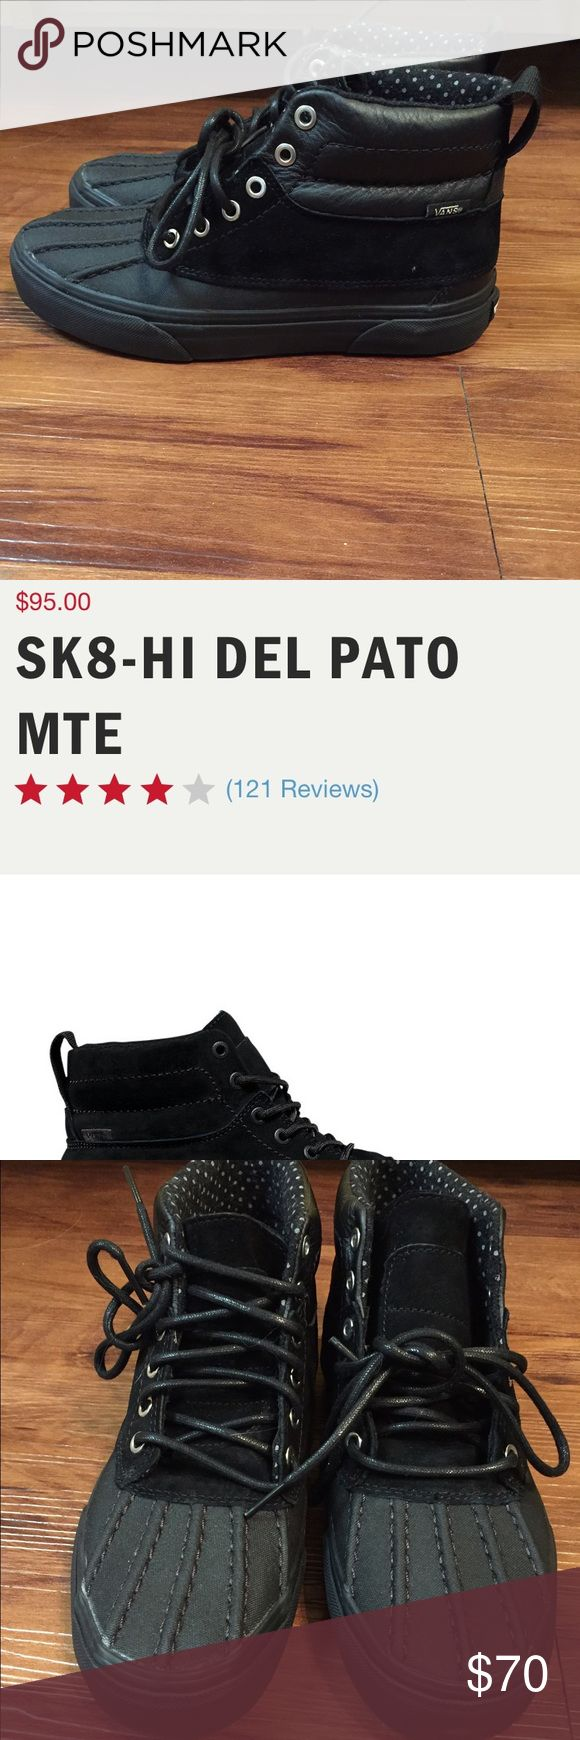 Vans SK8-HI del Pato mte weatherproof shoes OUT OF STOCK ON VANS WEBSITE, NWOT. I've decided I have too many shoes, but my loss is your gain, these are one of a kind and super great! Vans Shoes Sneakers